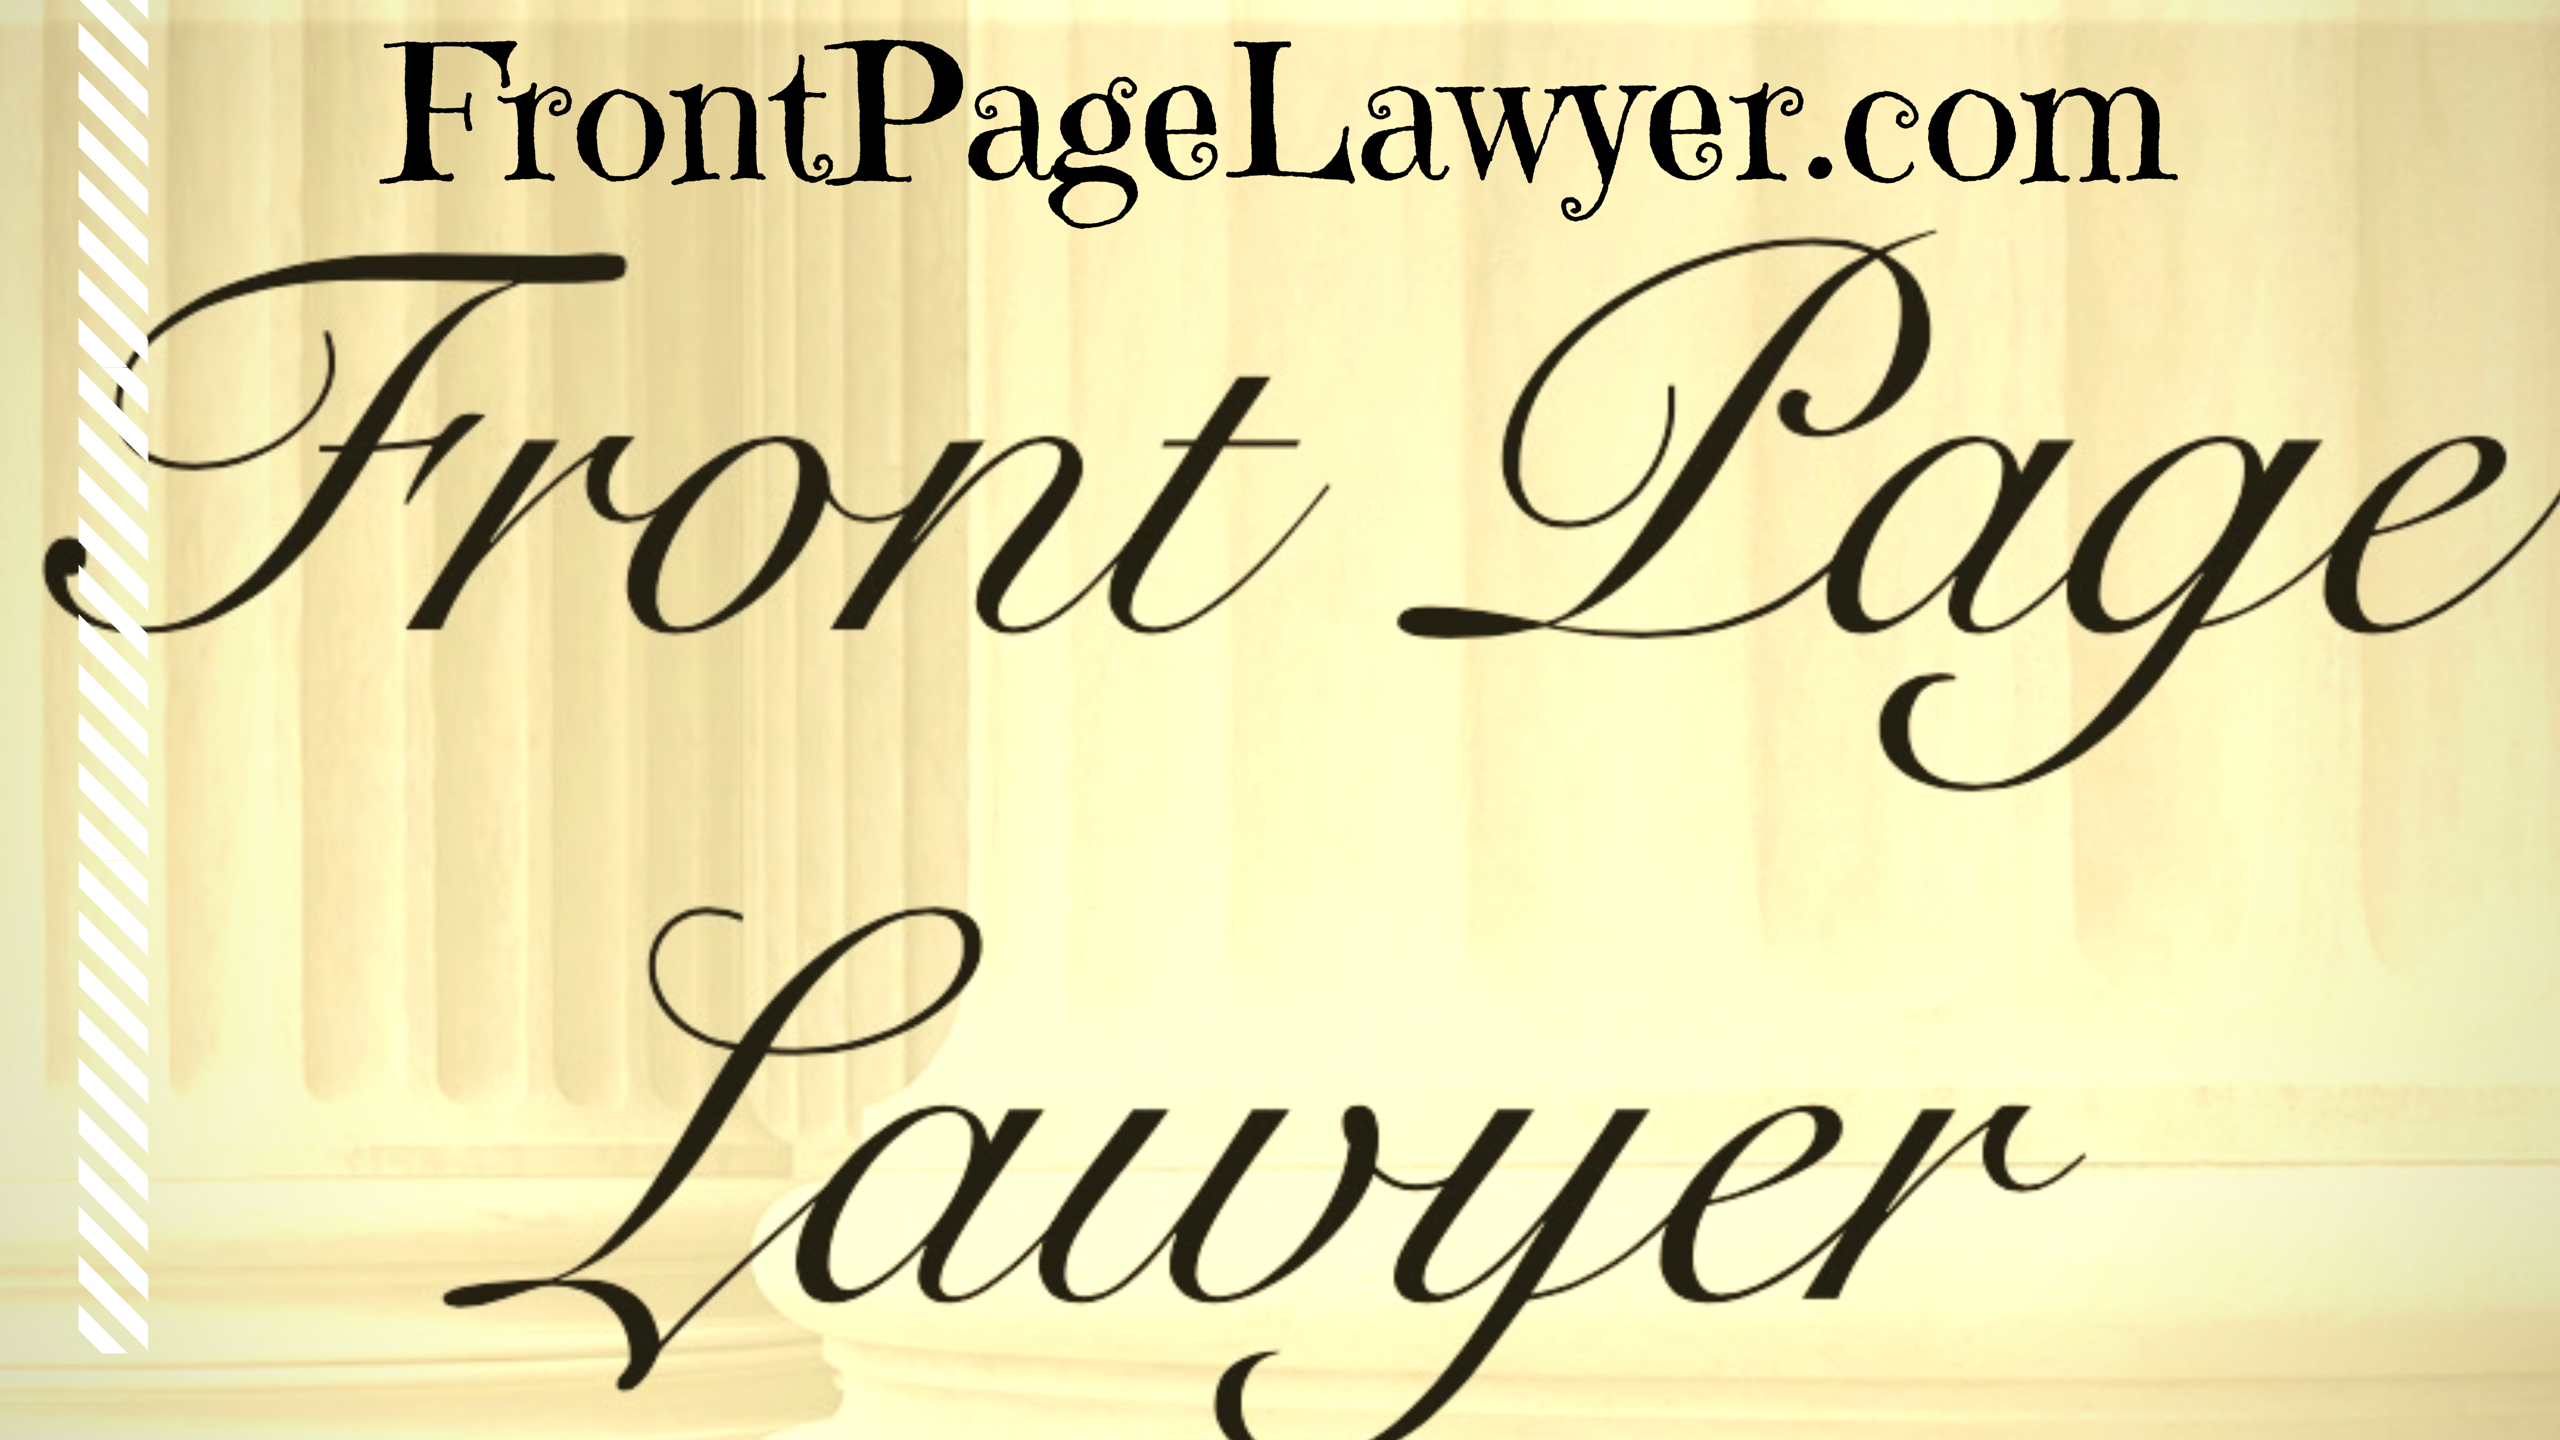 http://frontpagelawyer.com, Marketing for Attorneys, SEO for attorneys